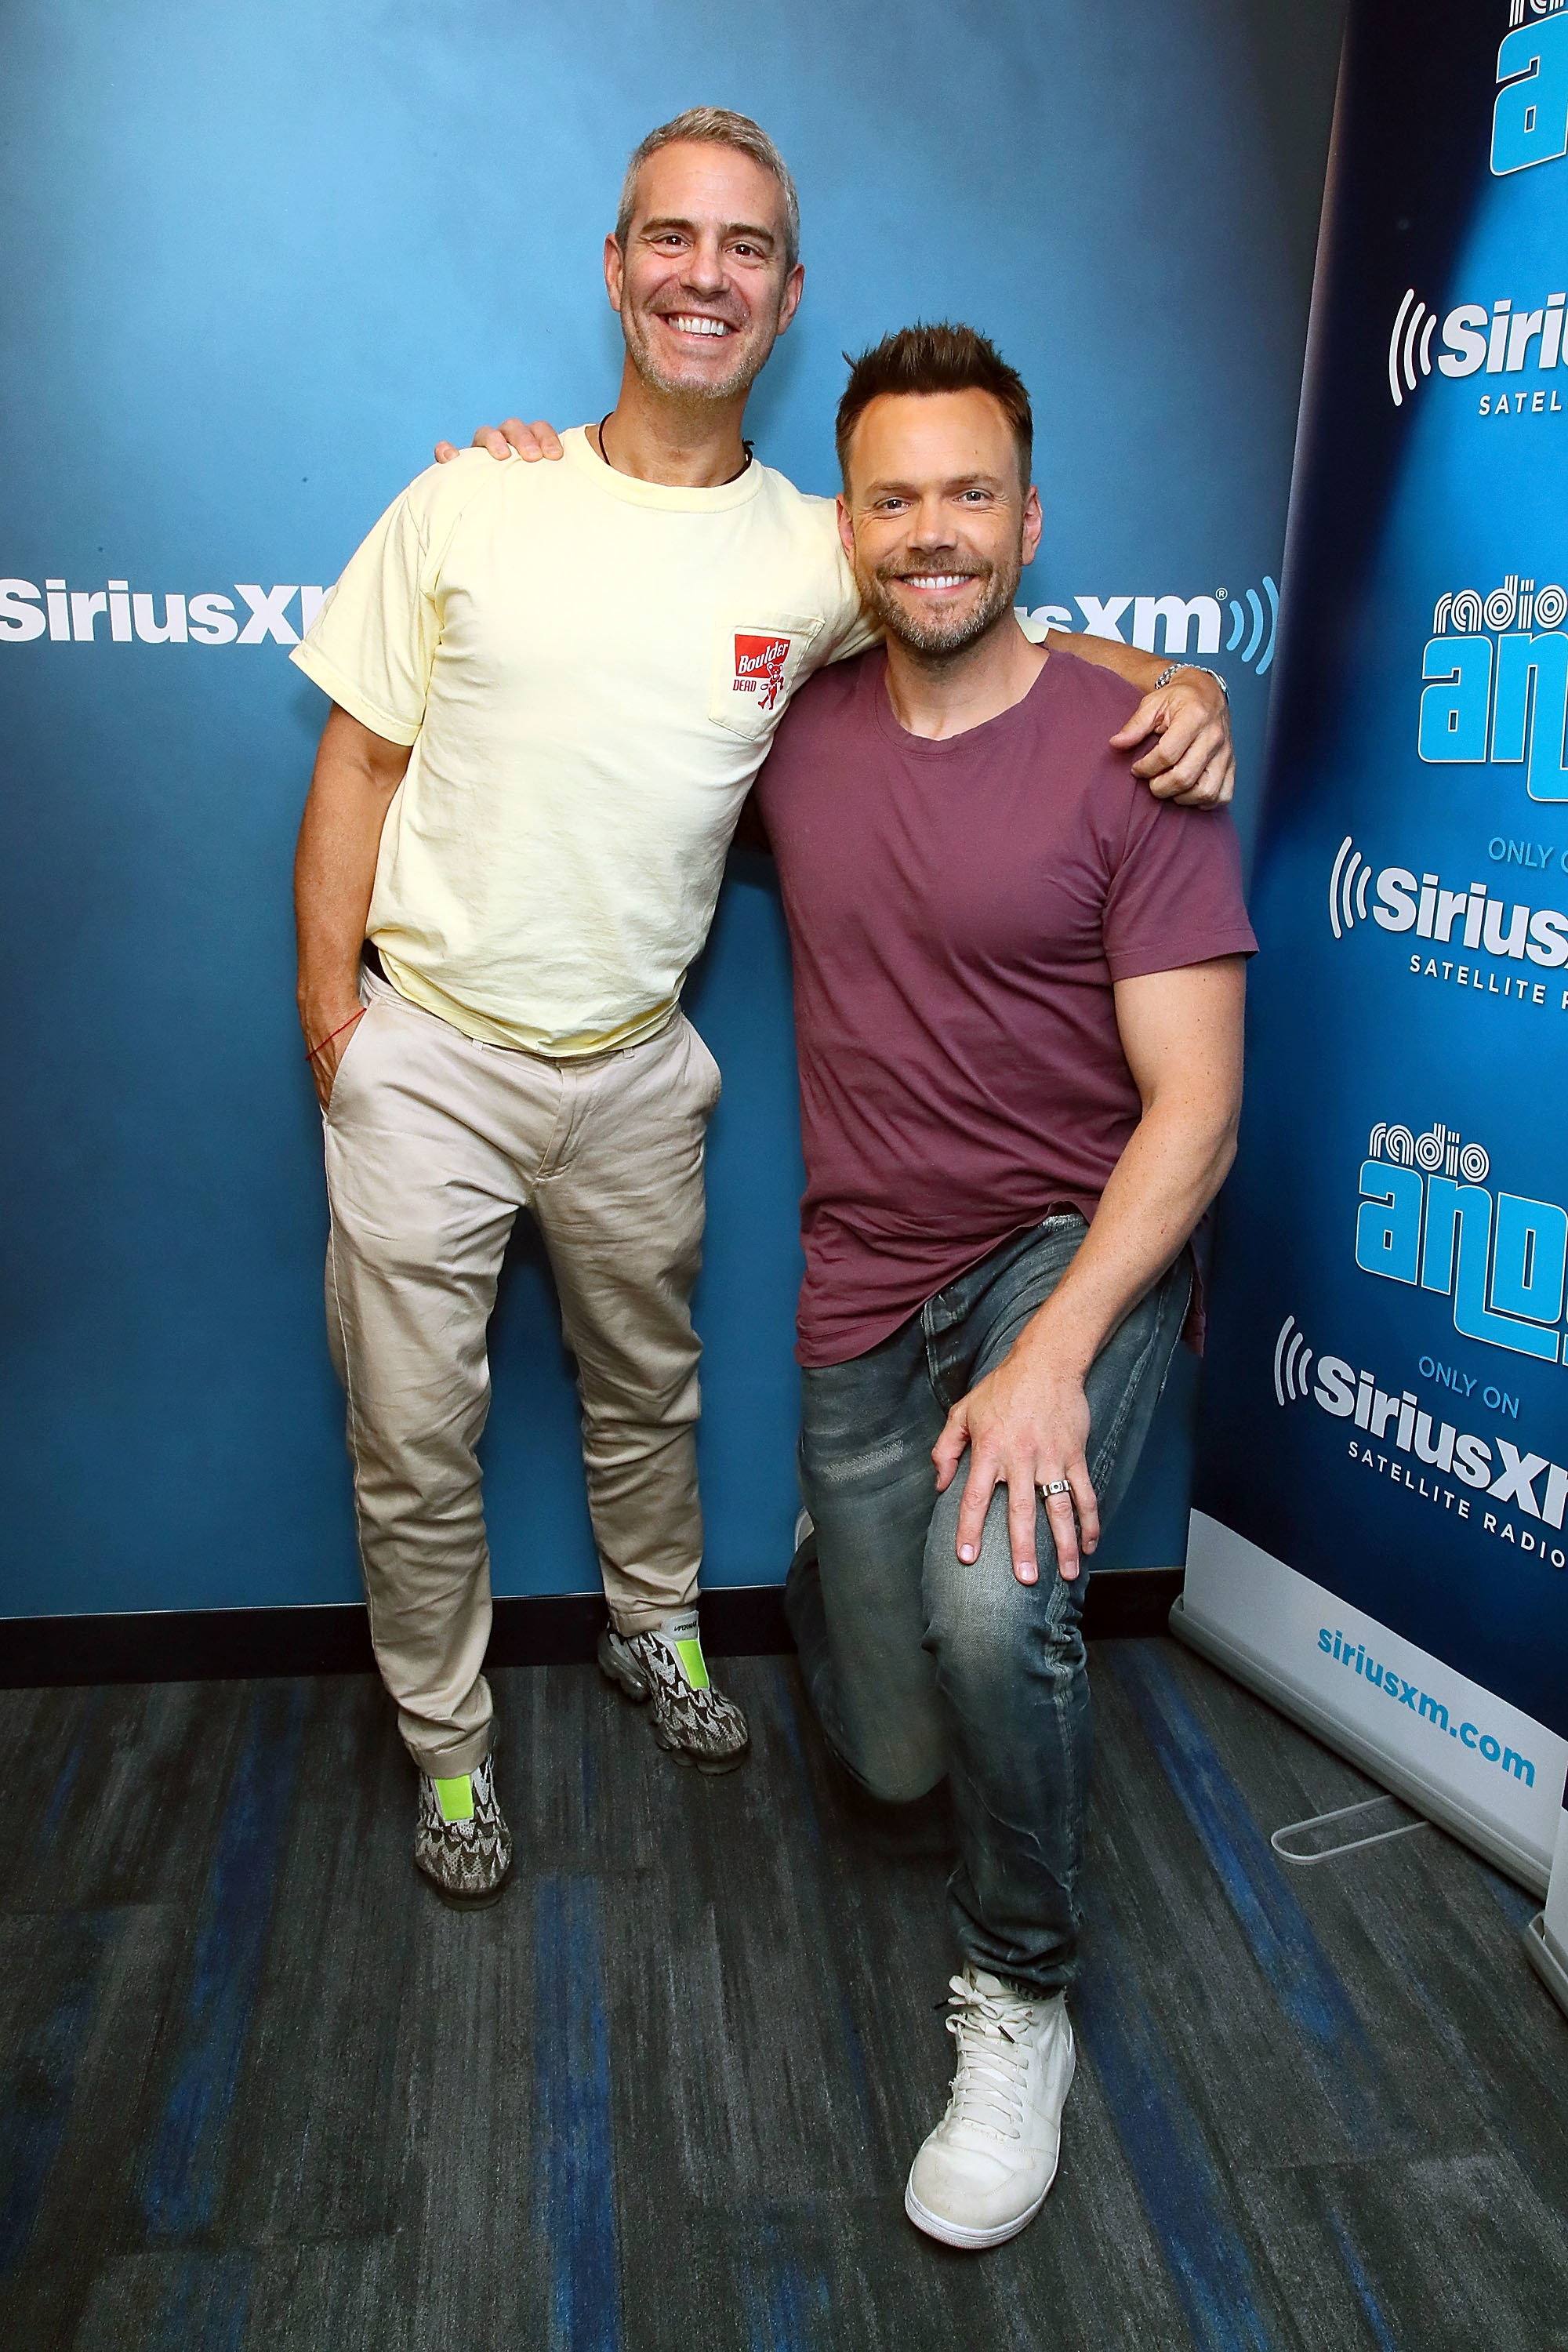 Andy Cohen and Joel McHale pose together during a visit to SiriusXM's 'Radio Andy' at the SiriusXM Studios in New York City on July 16, 2018.